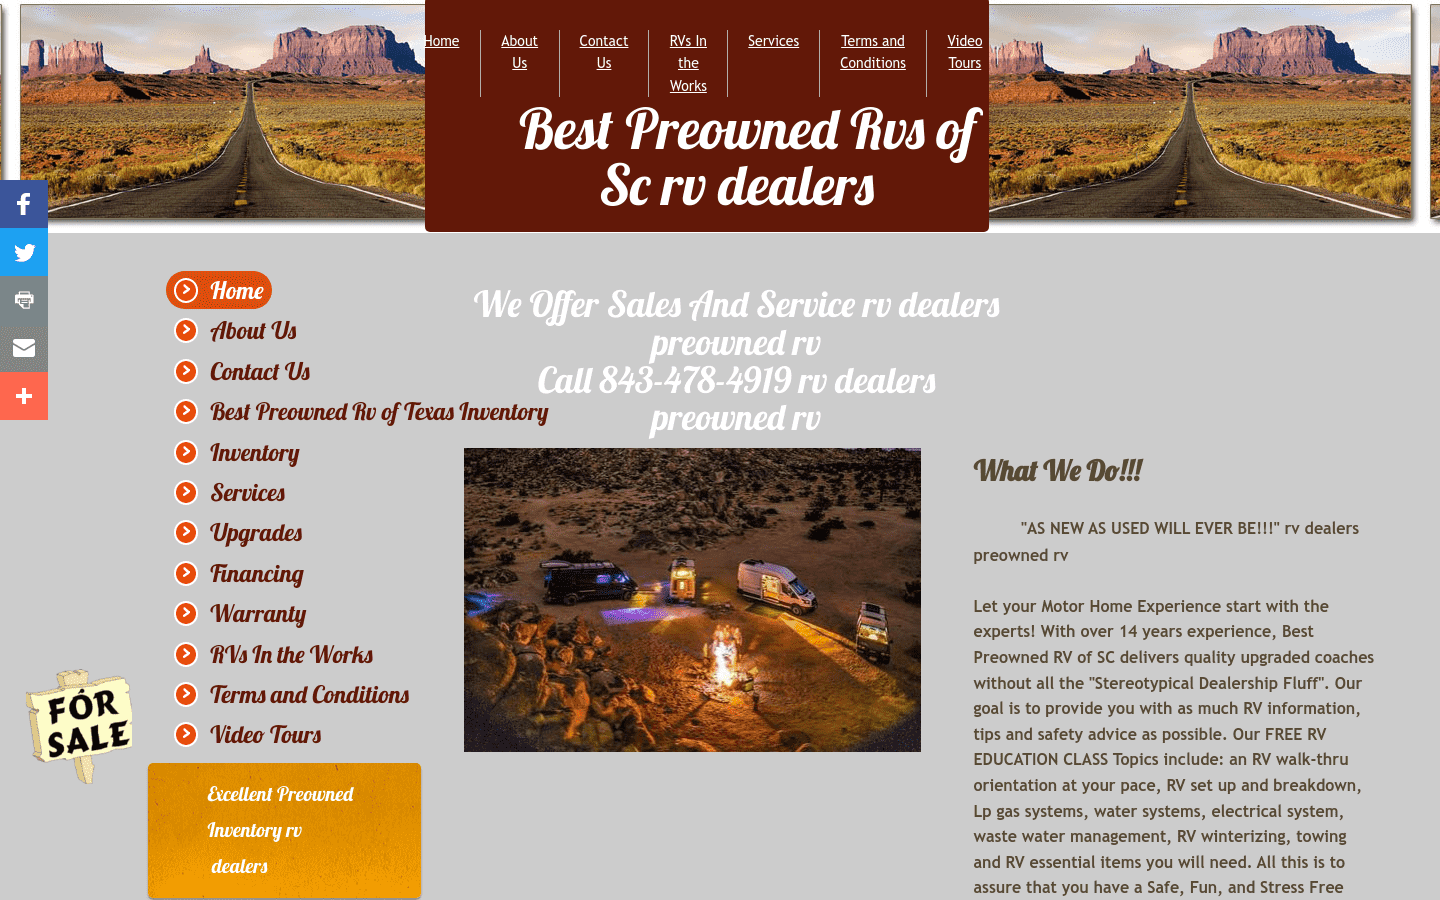 Best Preowned Rvs Of South Carolina reviews and complaints